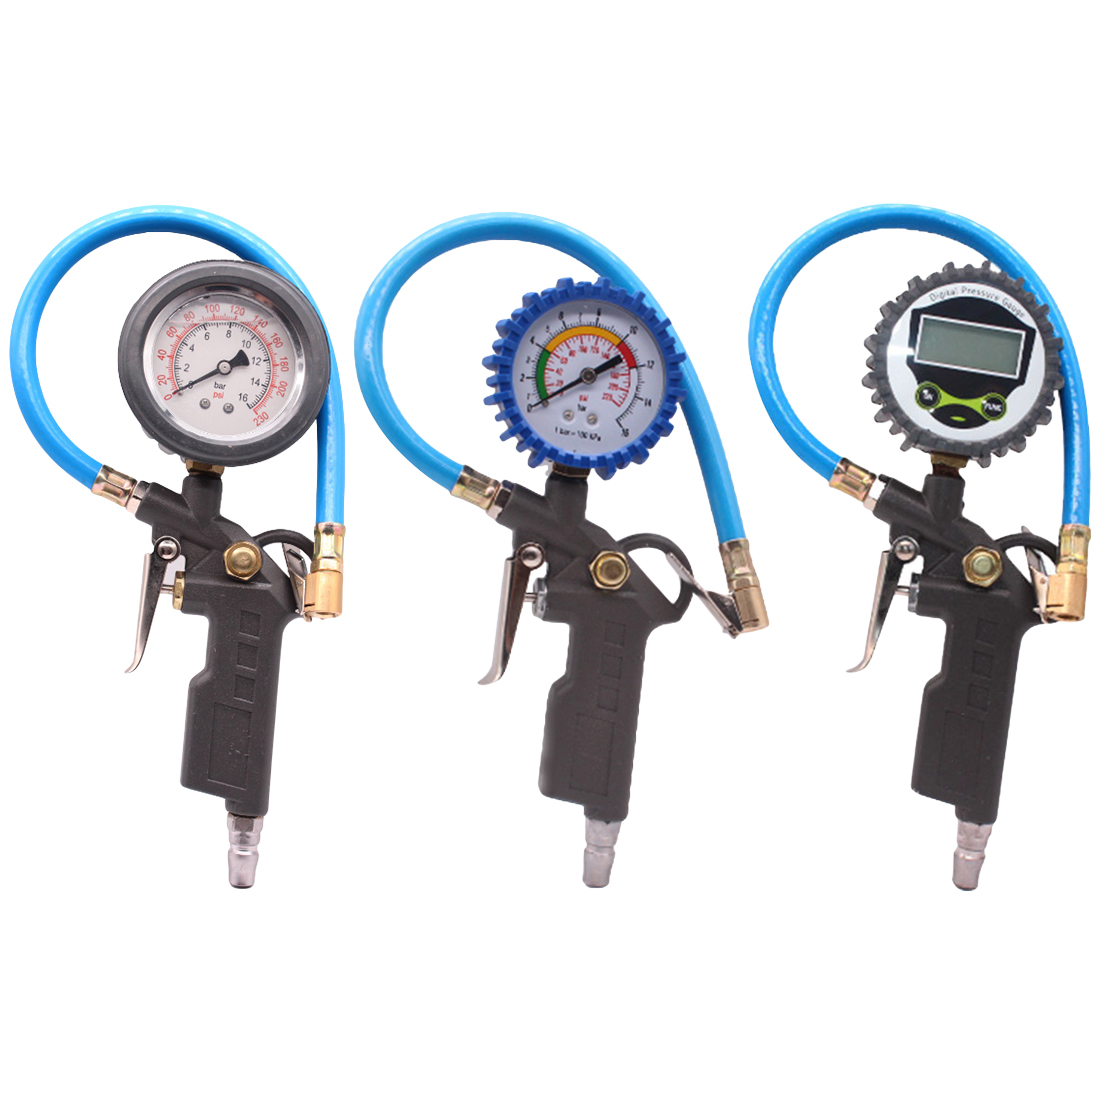 Car Vehicle LCD Digital 0-220PSI Air Tire Pressure Truck Inflator Gauge Dial Meter Tester Manometer Measuring Instrument